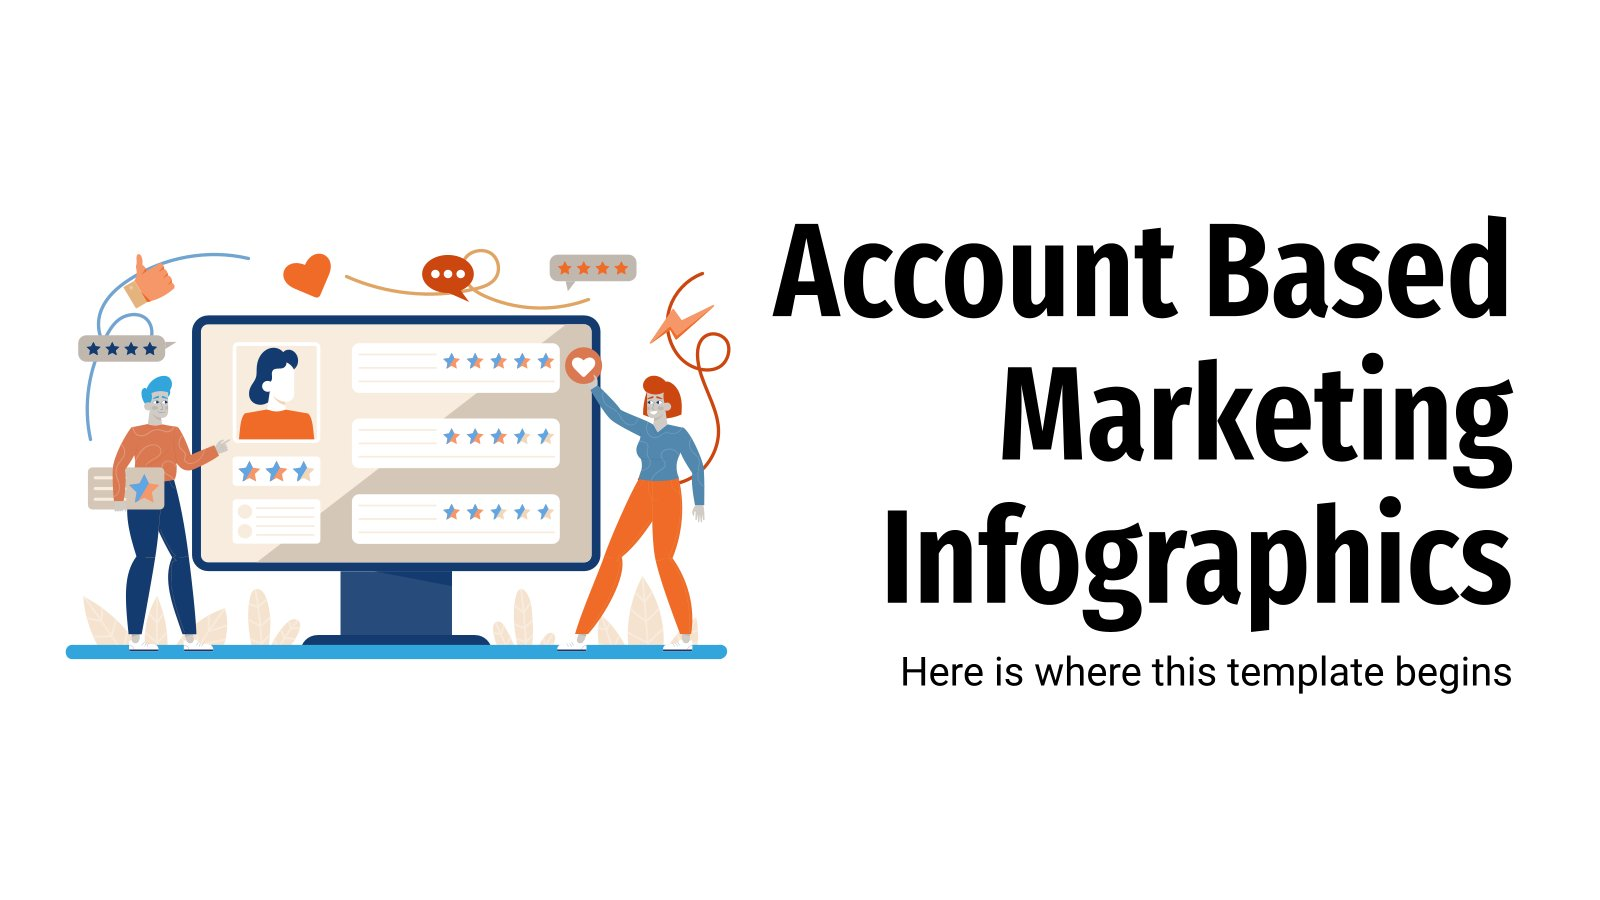 Account Based Marketing Infographics presentation template